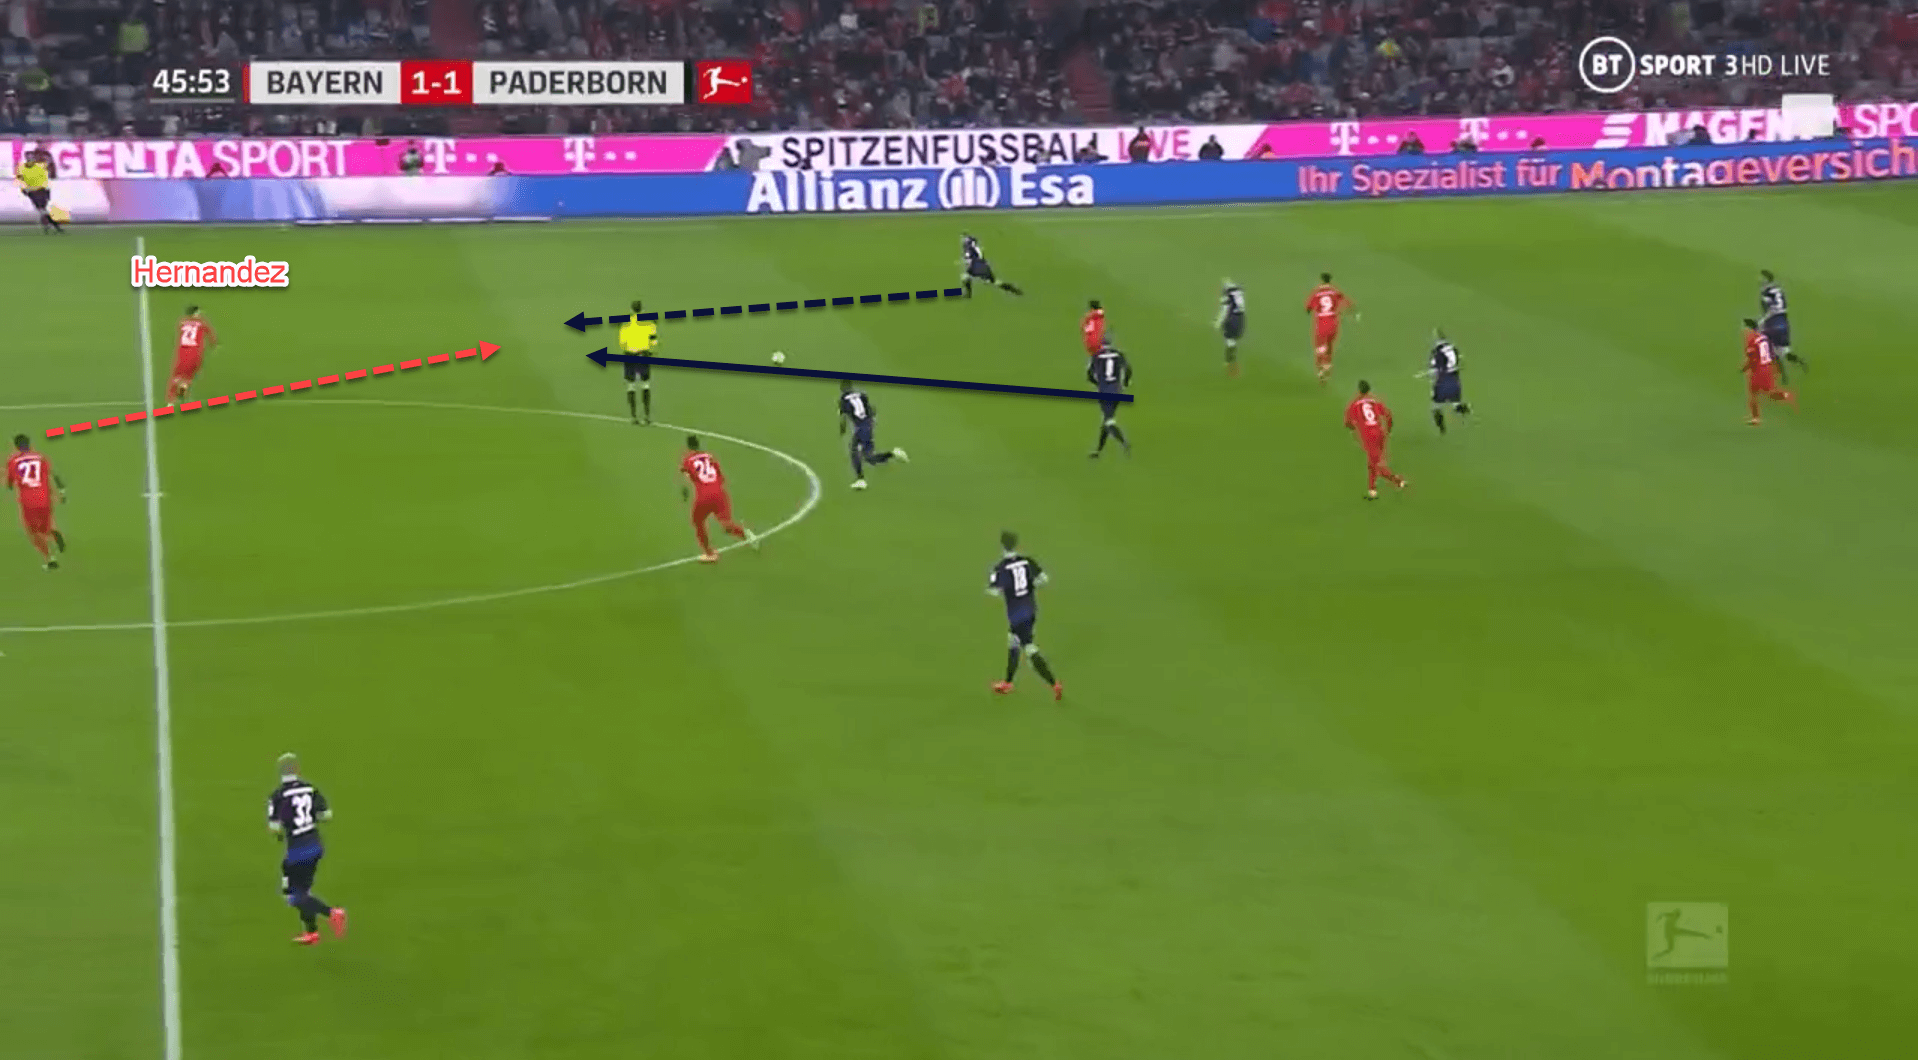 Lucas Hernandez at Bayern Munich 2019/20 - scout report